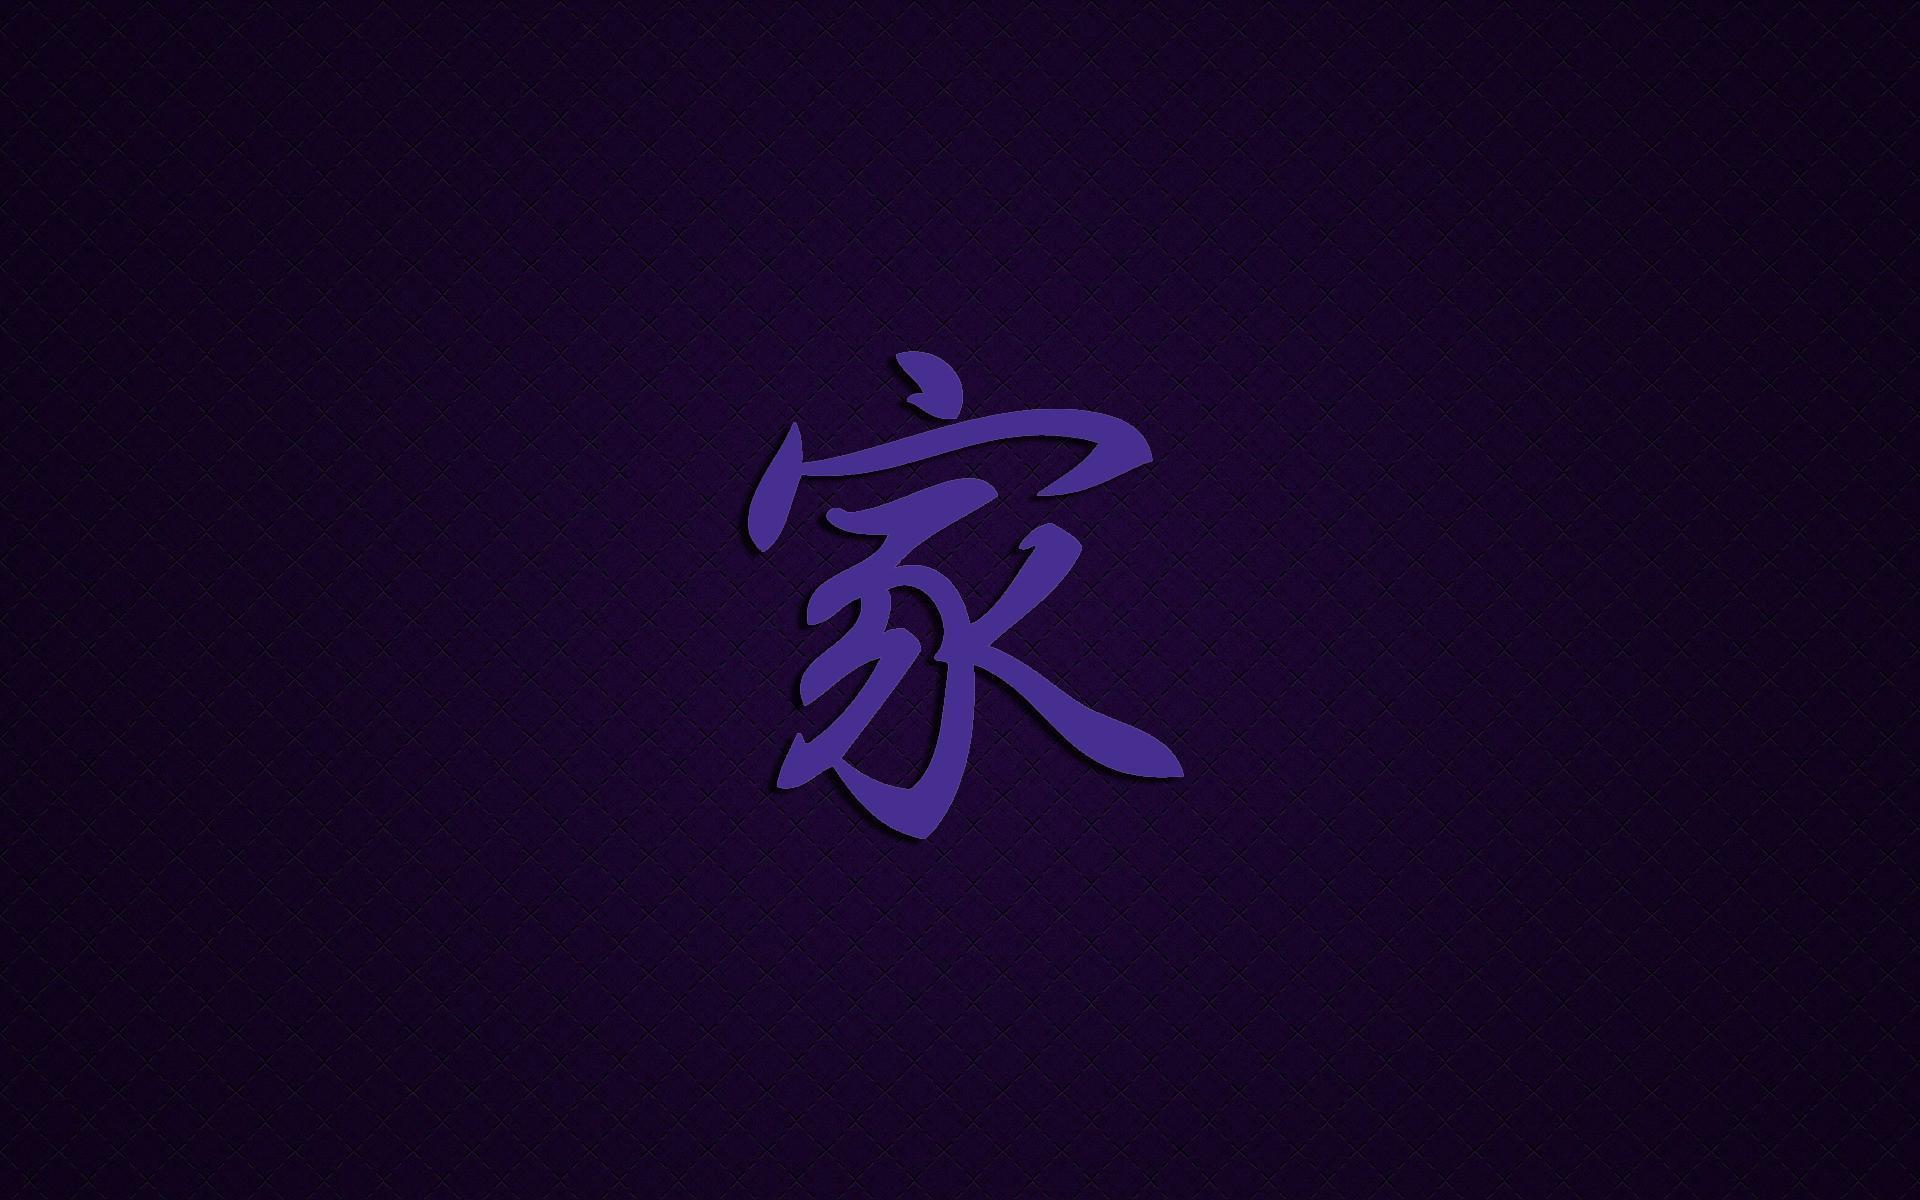 Chinese Symbols Wallpapers Wallpaper Cave